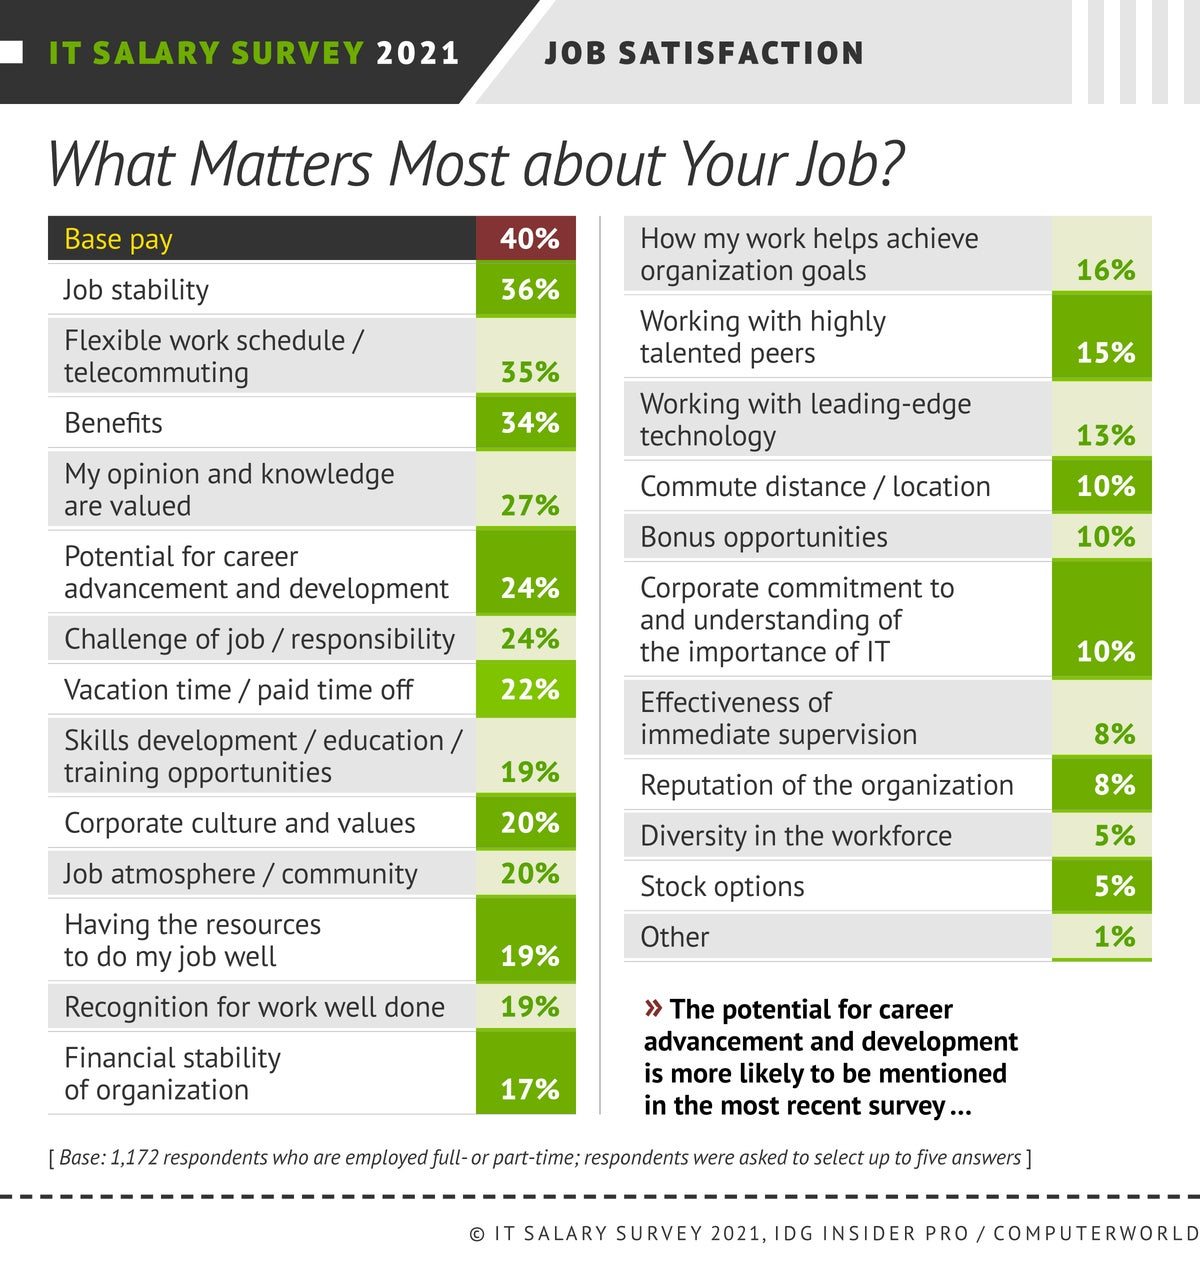 Insider Pro | Computerworld  >  IT Salary Survey 2021  >  Satisfaction: What Matters Most